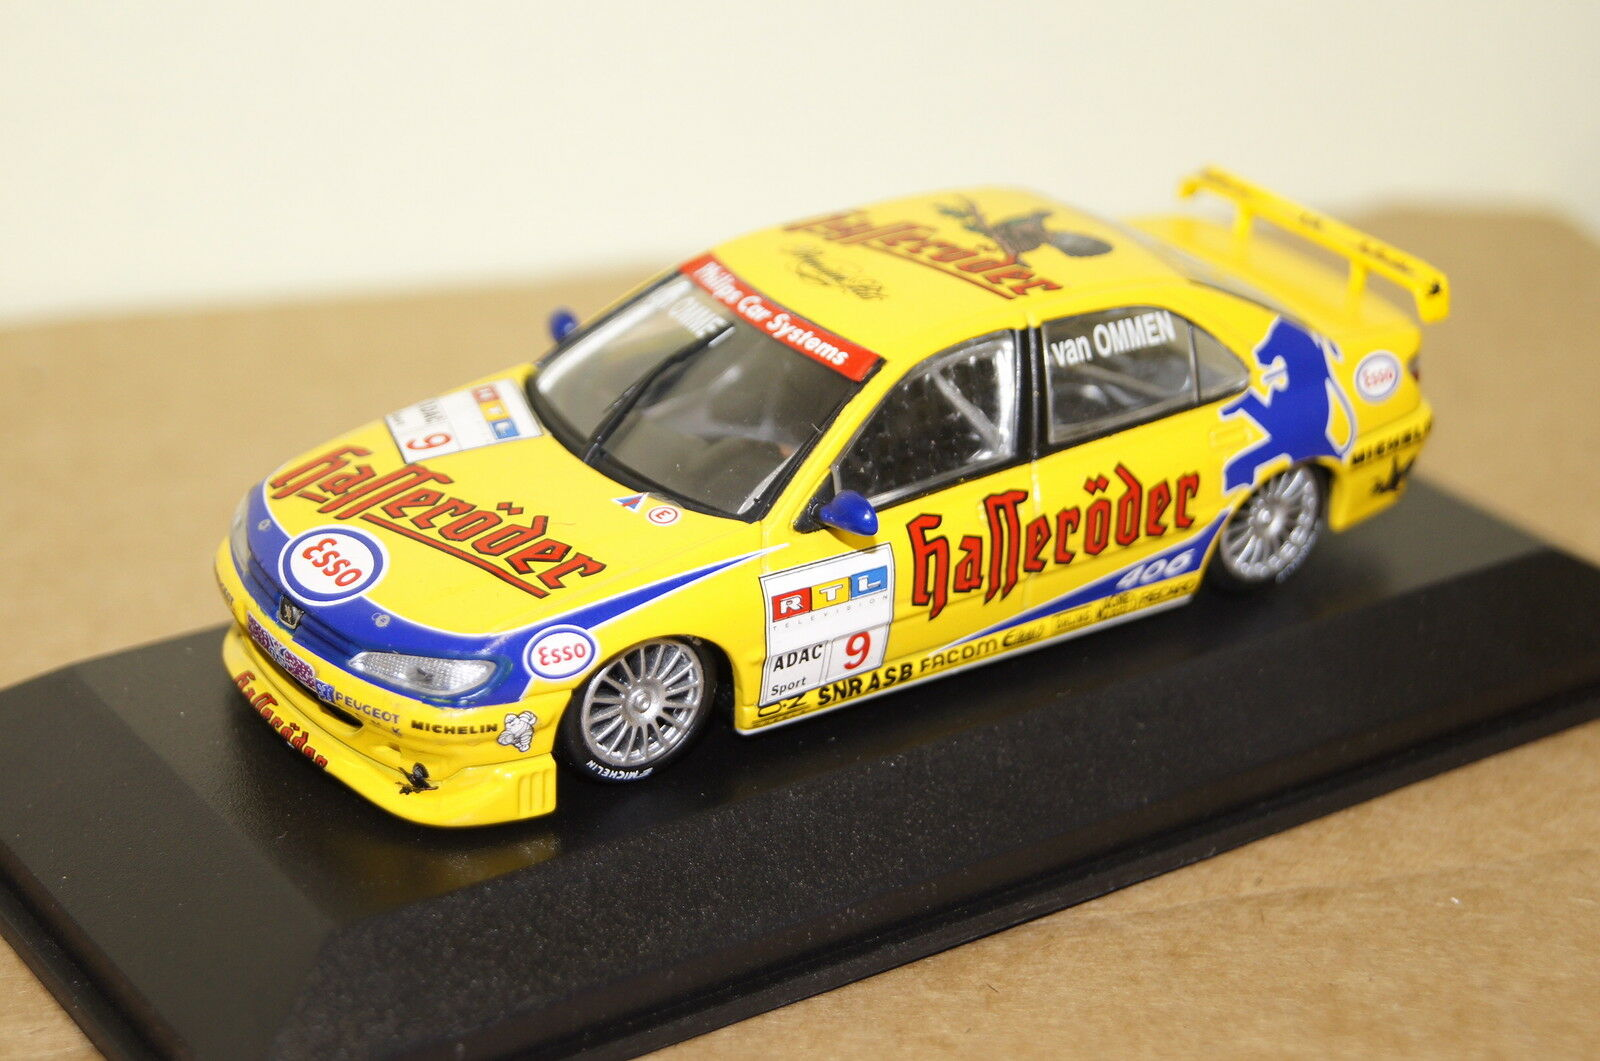 PEUGEOT 406 STW 1997 odio roder #9 GIALLO 1:43 Minichamps Nuovo & Ovp 430971109